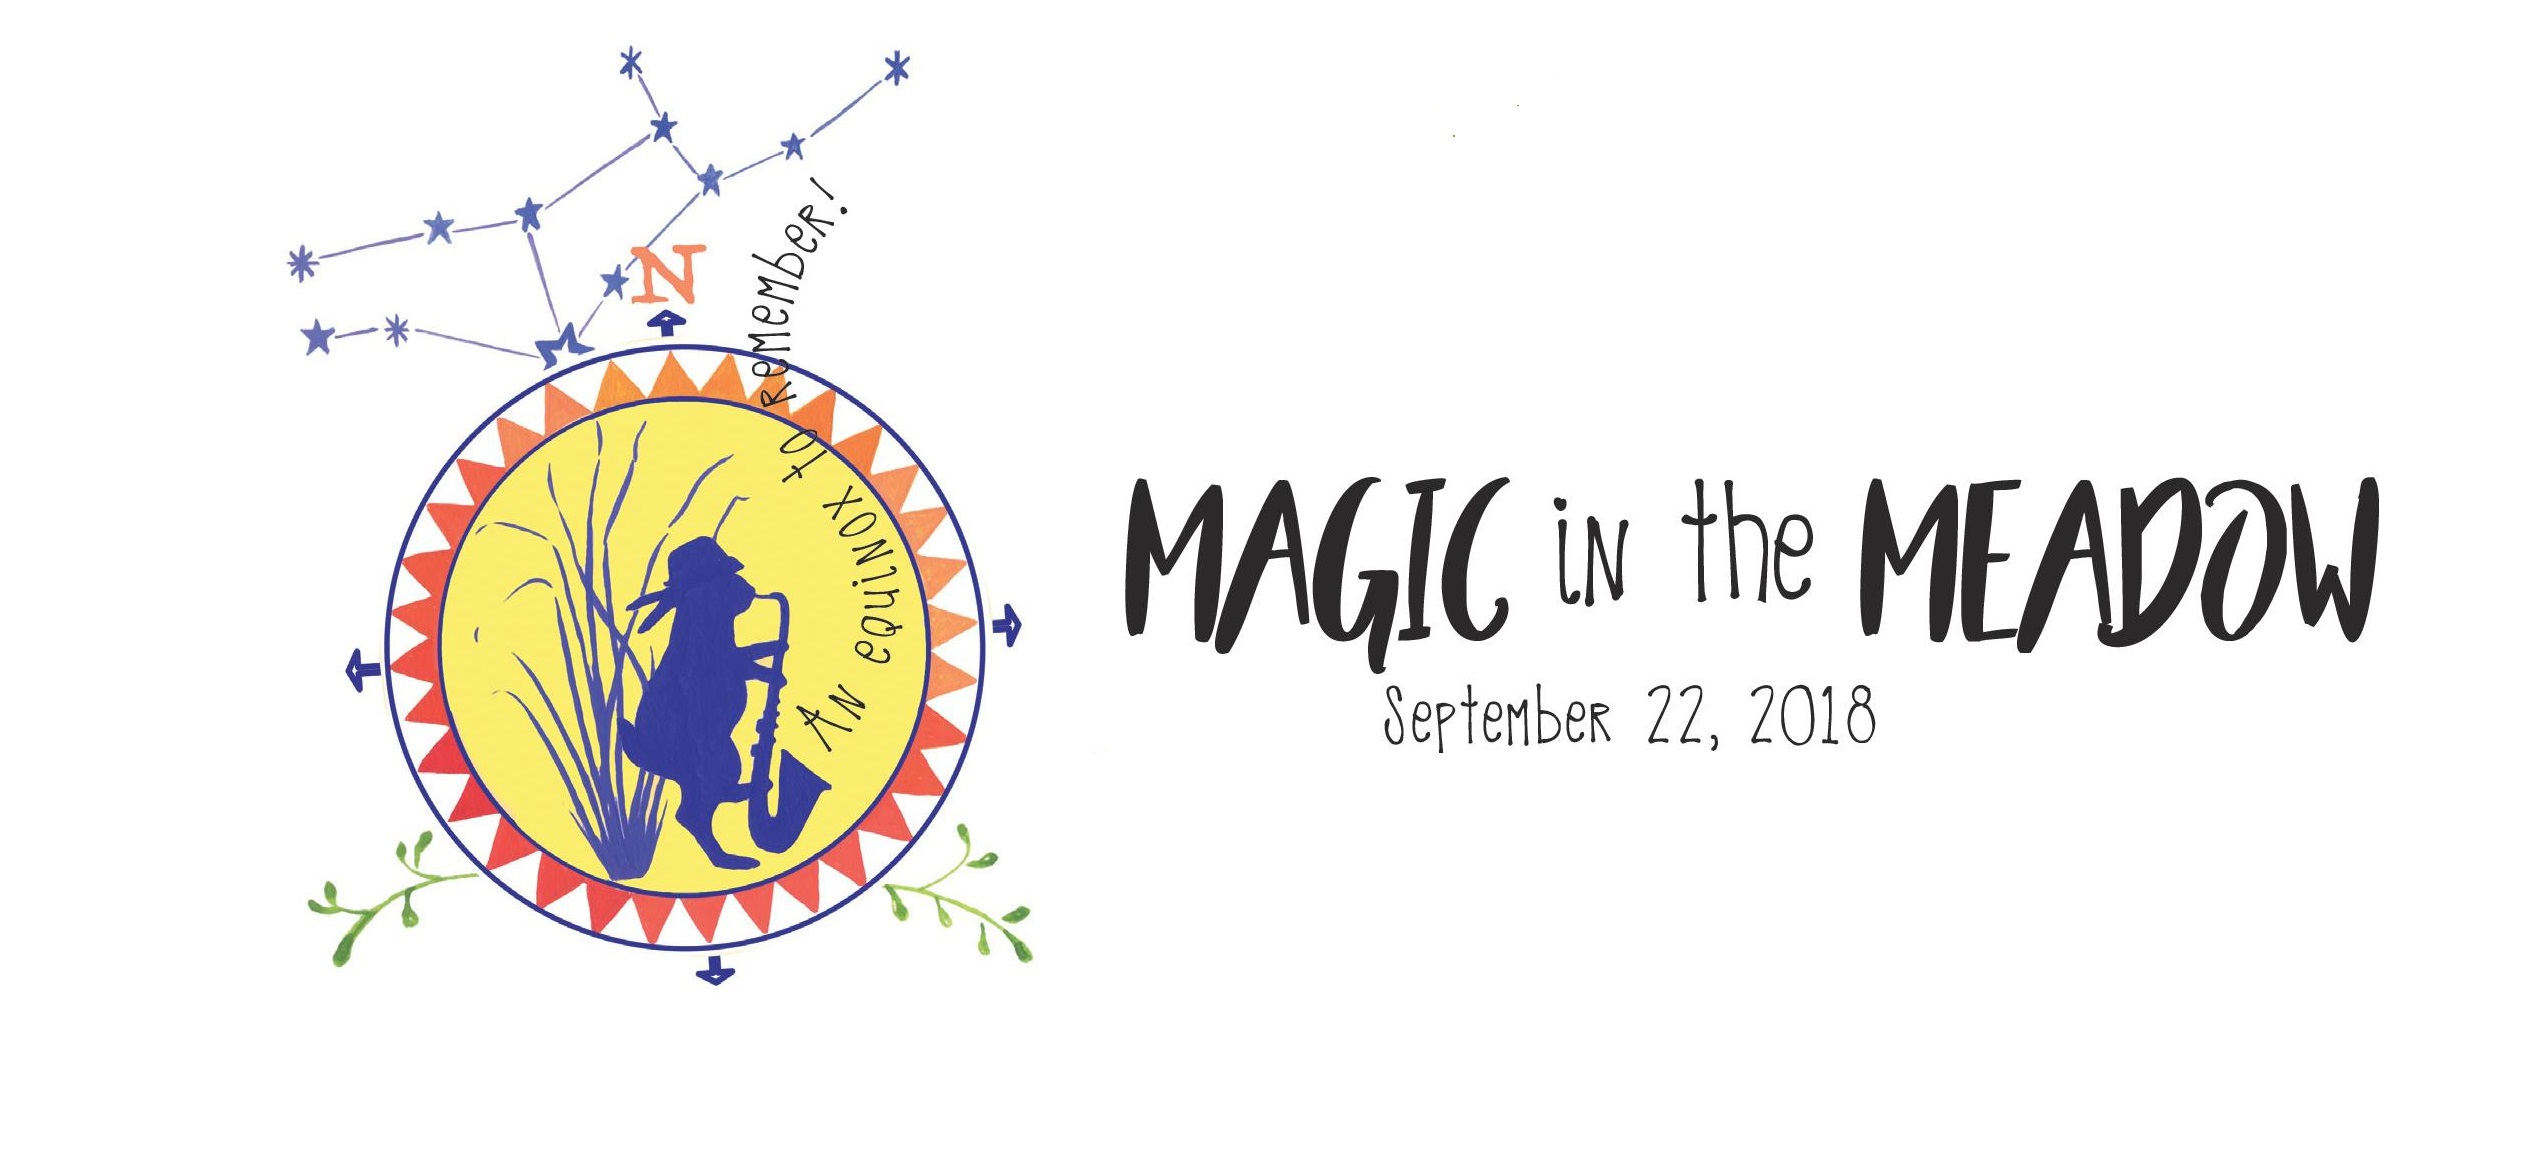 Reserve your tickets for Magic in the Meadow!